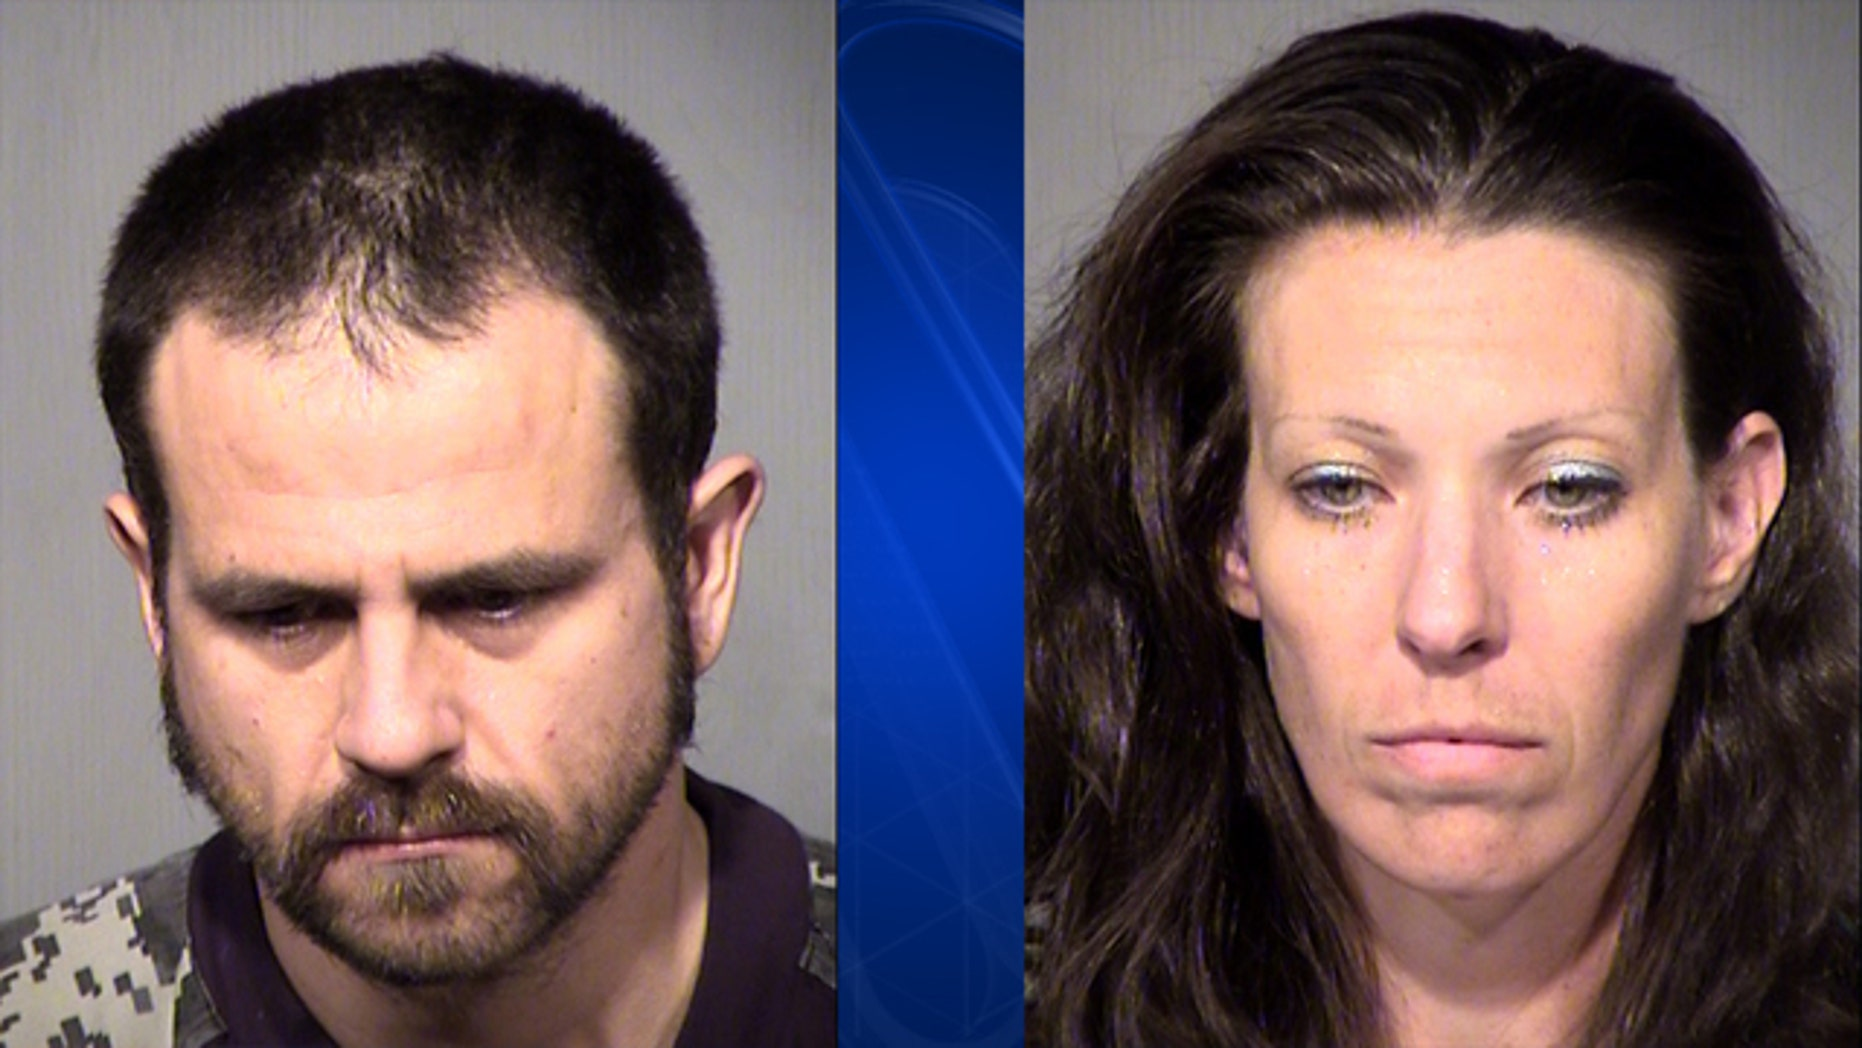 Matthew Kevin Dunlap (left) and Marisa Ann Claire (right) are facing multiple charges involving a young girl in Arizona.